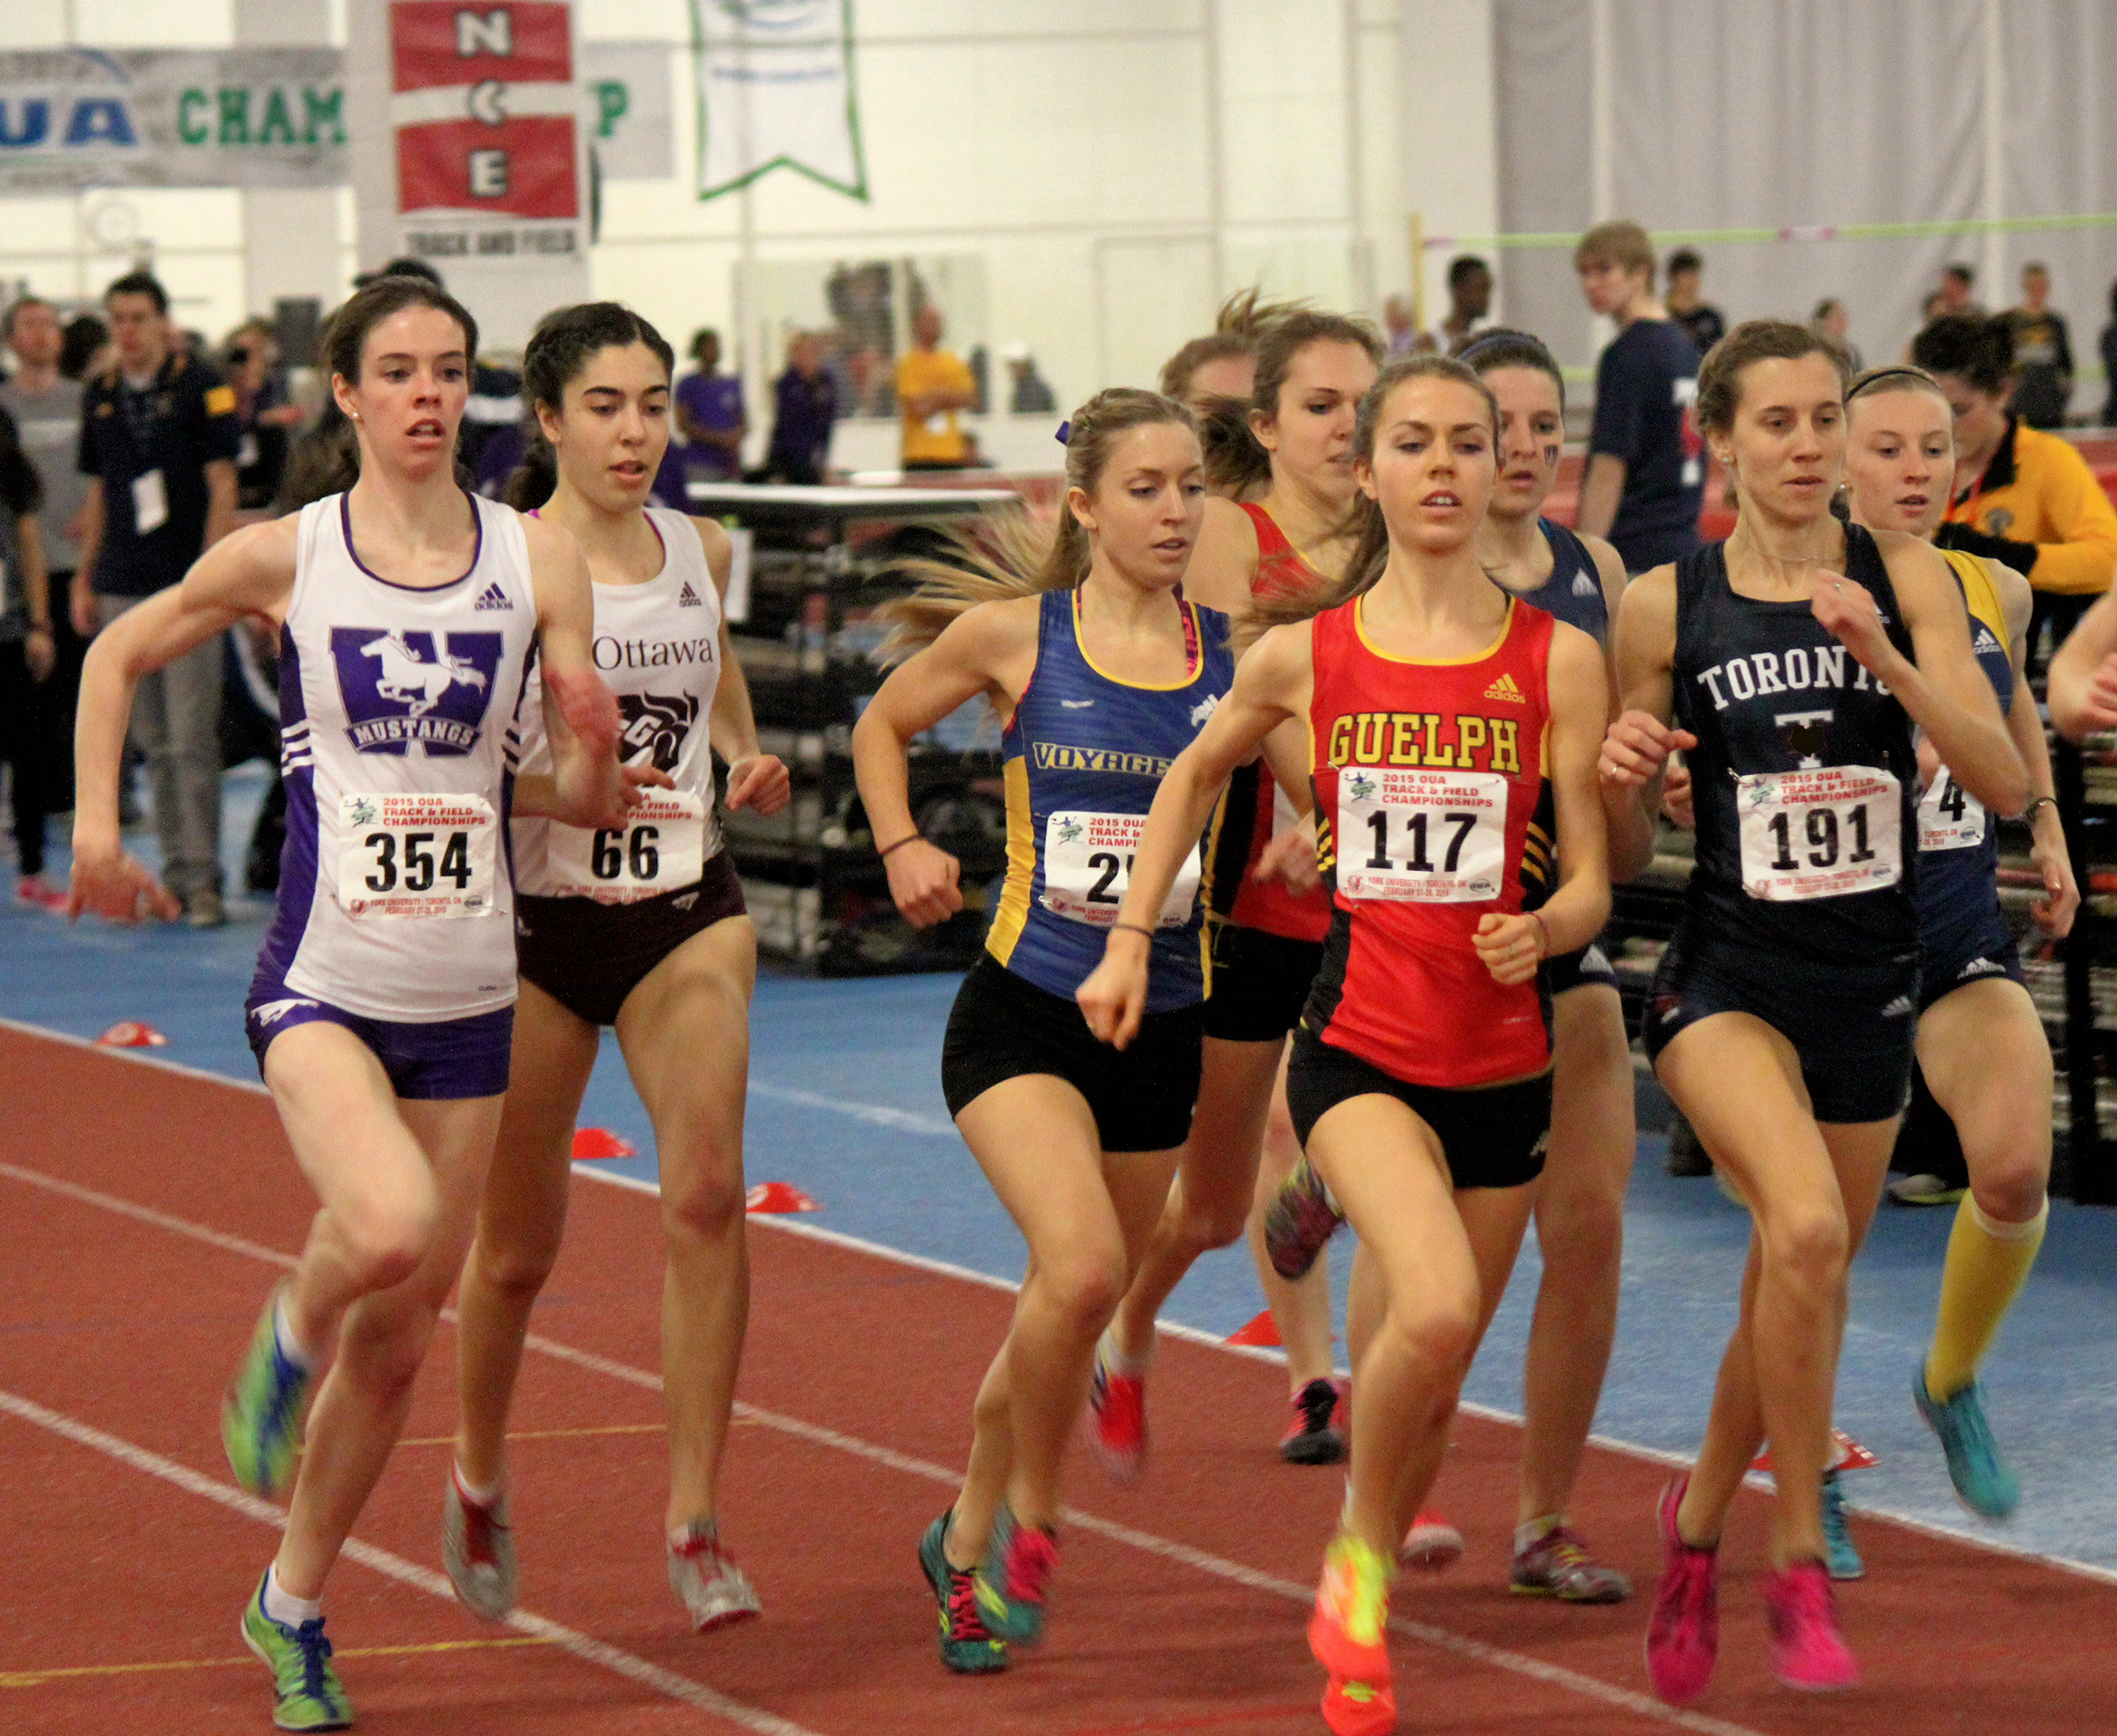 Katie Wismer competes at the indoor track OUA Championship in February. Photo provided